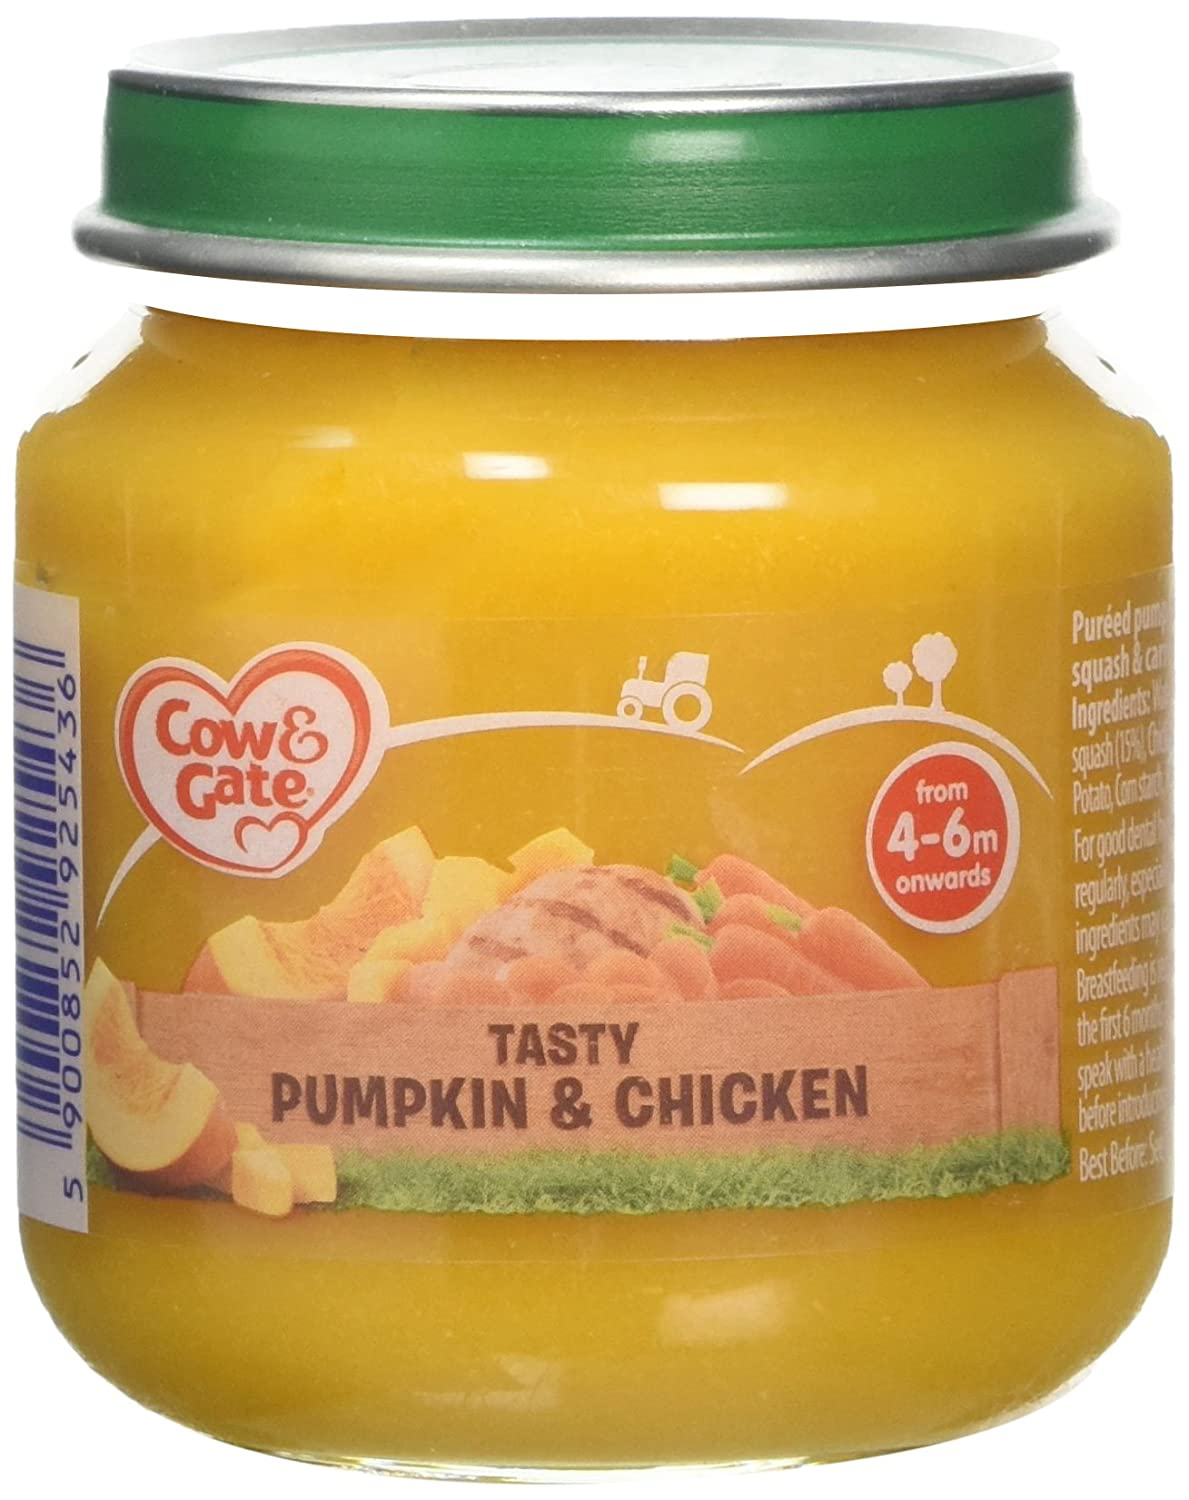 Cow & Gate Tasty Pumpkin and Chicken from 4-6 Months Onwards Baby Food Jar, 125 g 108150908